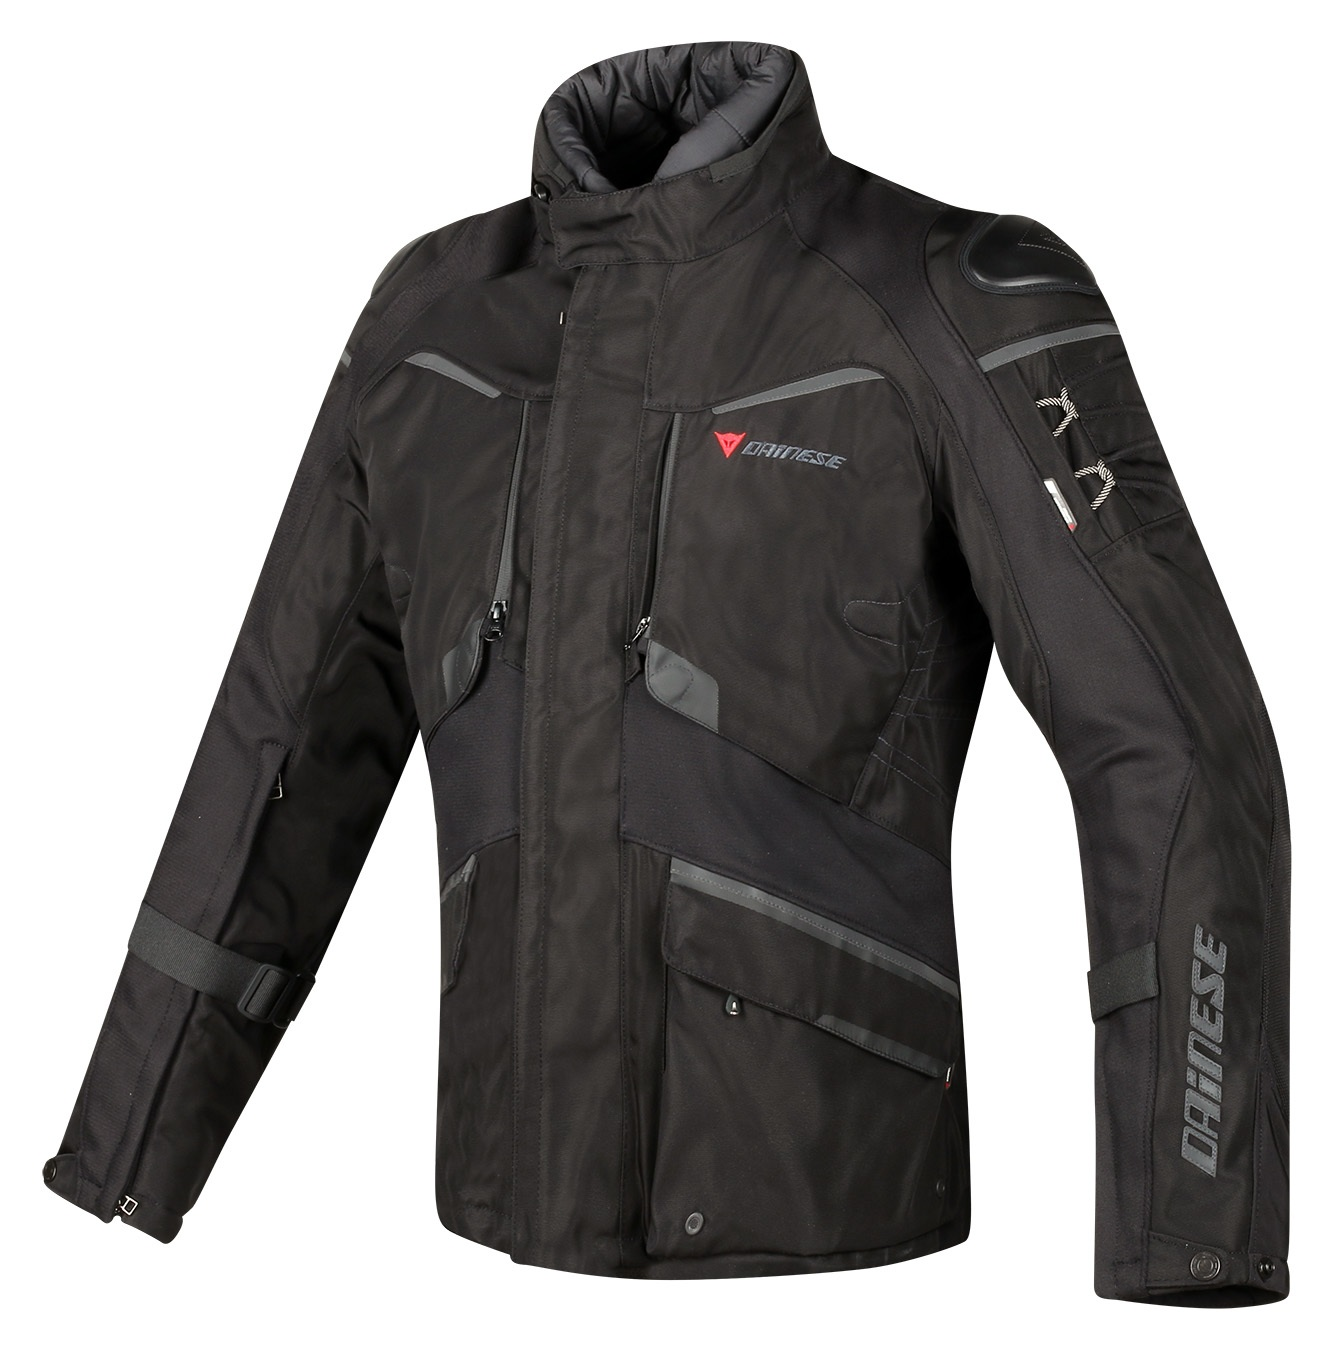 Dainese ridder d1 gore tex jacket 25 off for D garage dainese corbeil horaires